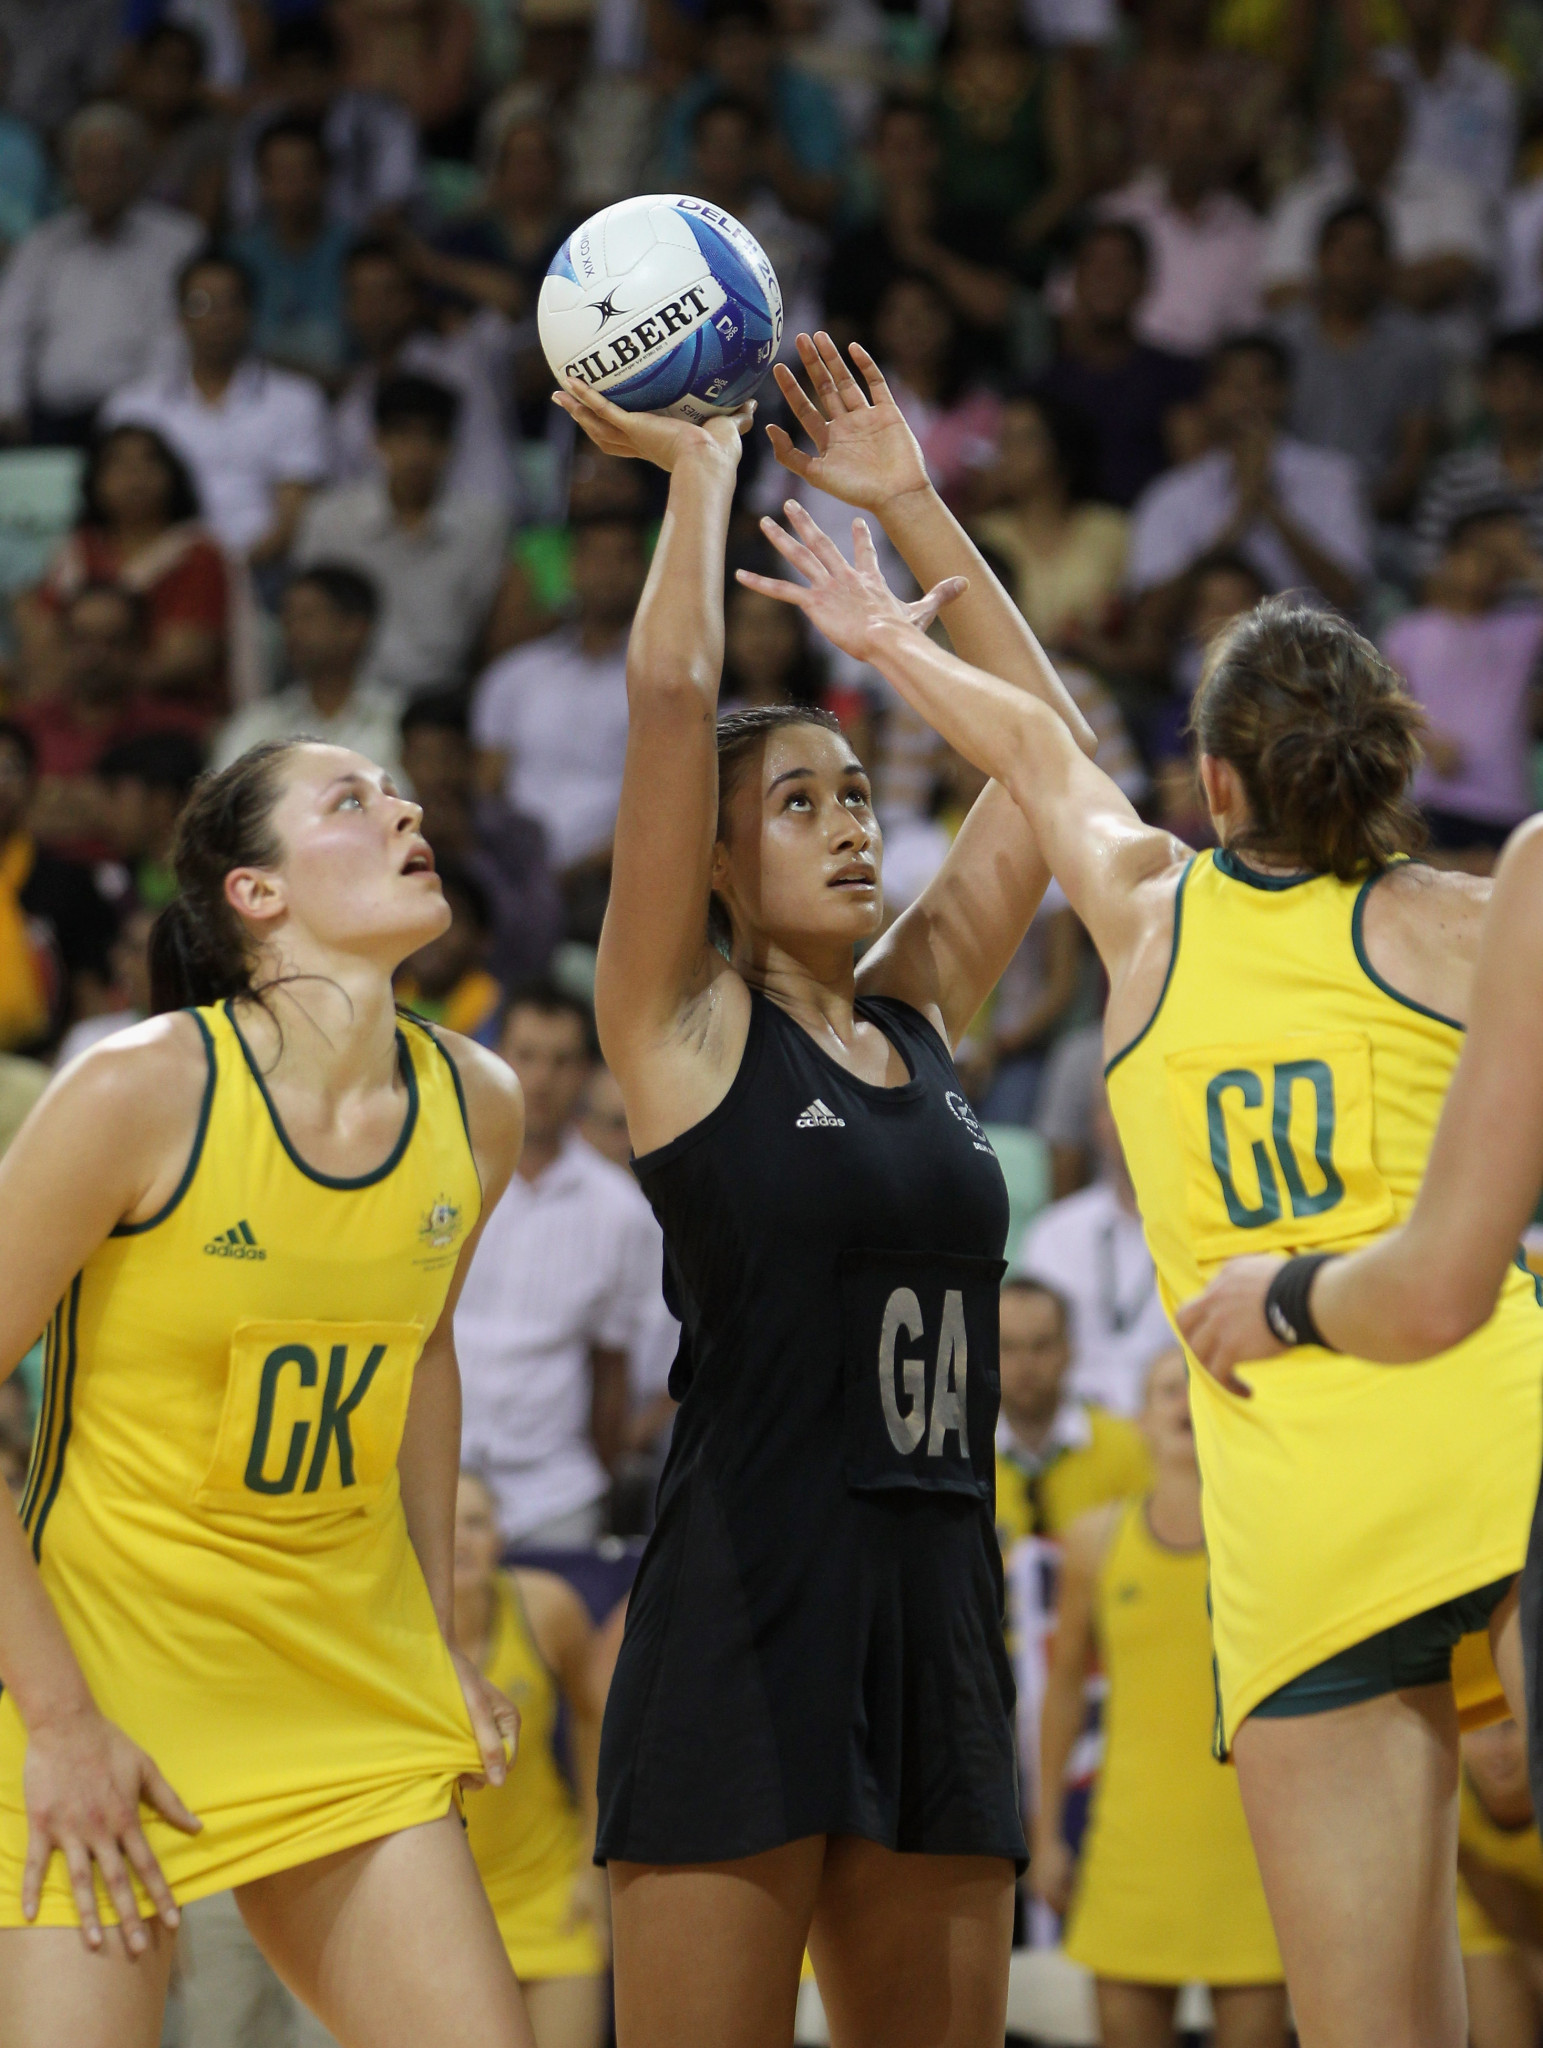 Maria Folau won two Commonwealth Games gold medals, including at Delhi 2010, when New Zealand beat Australia in the final with her scoring the winning goal in extra-time ©Getty Images